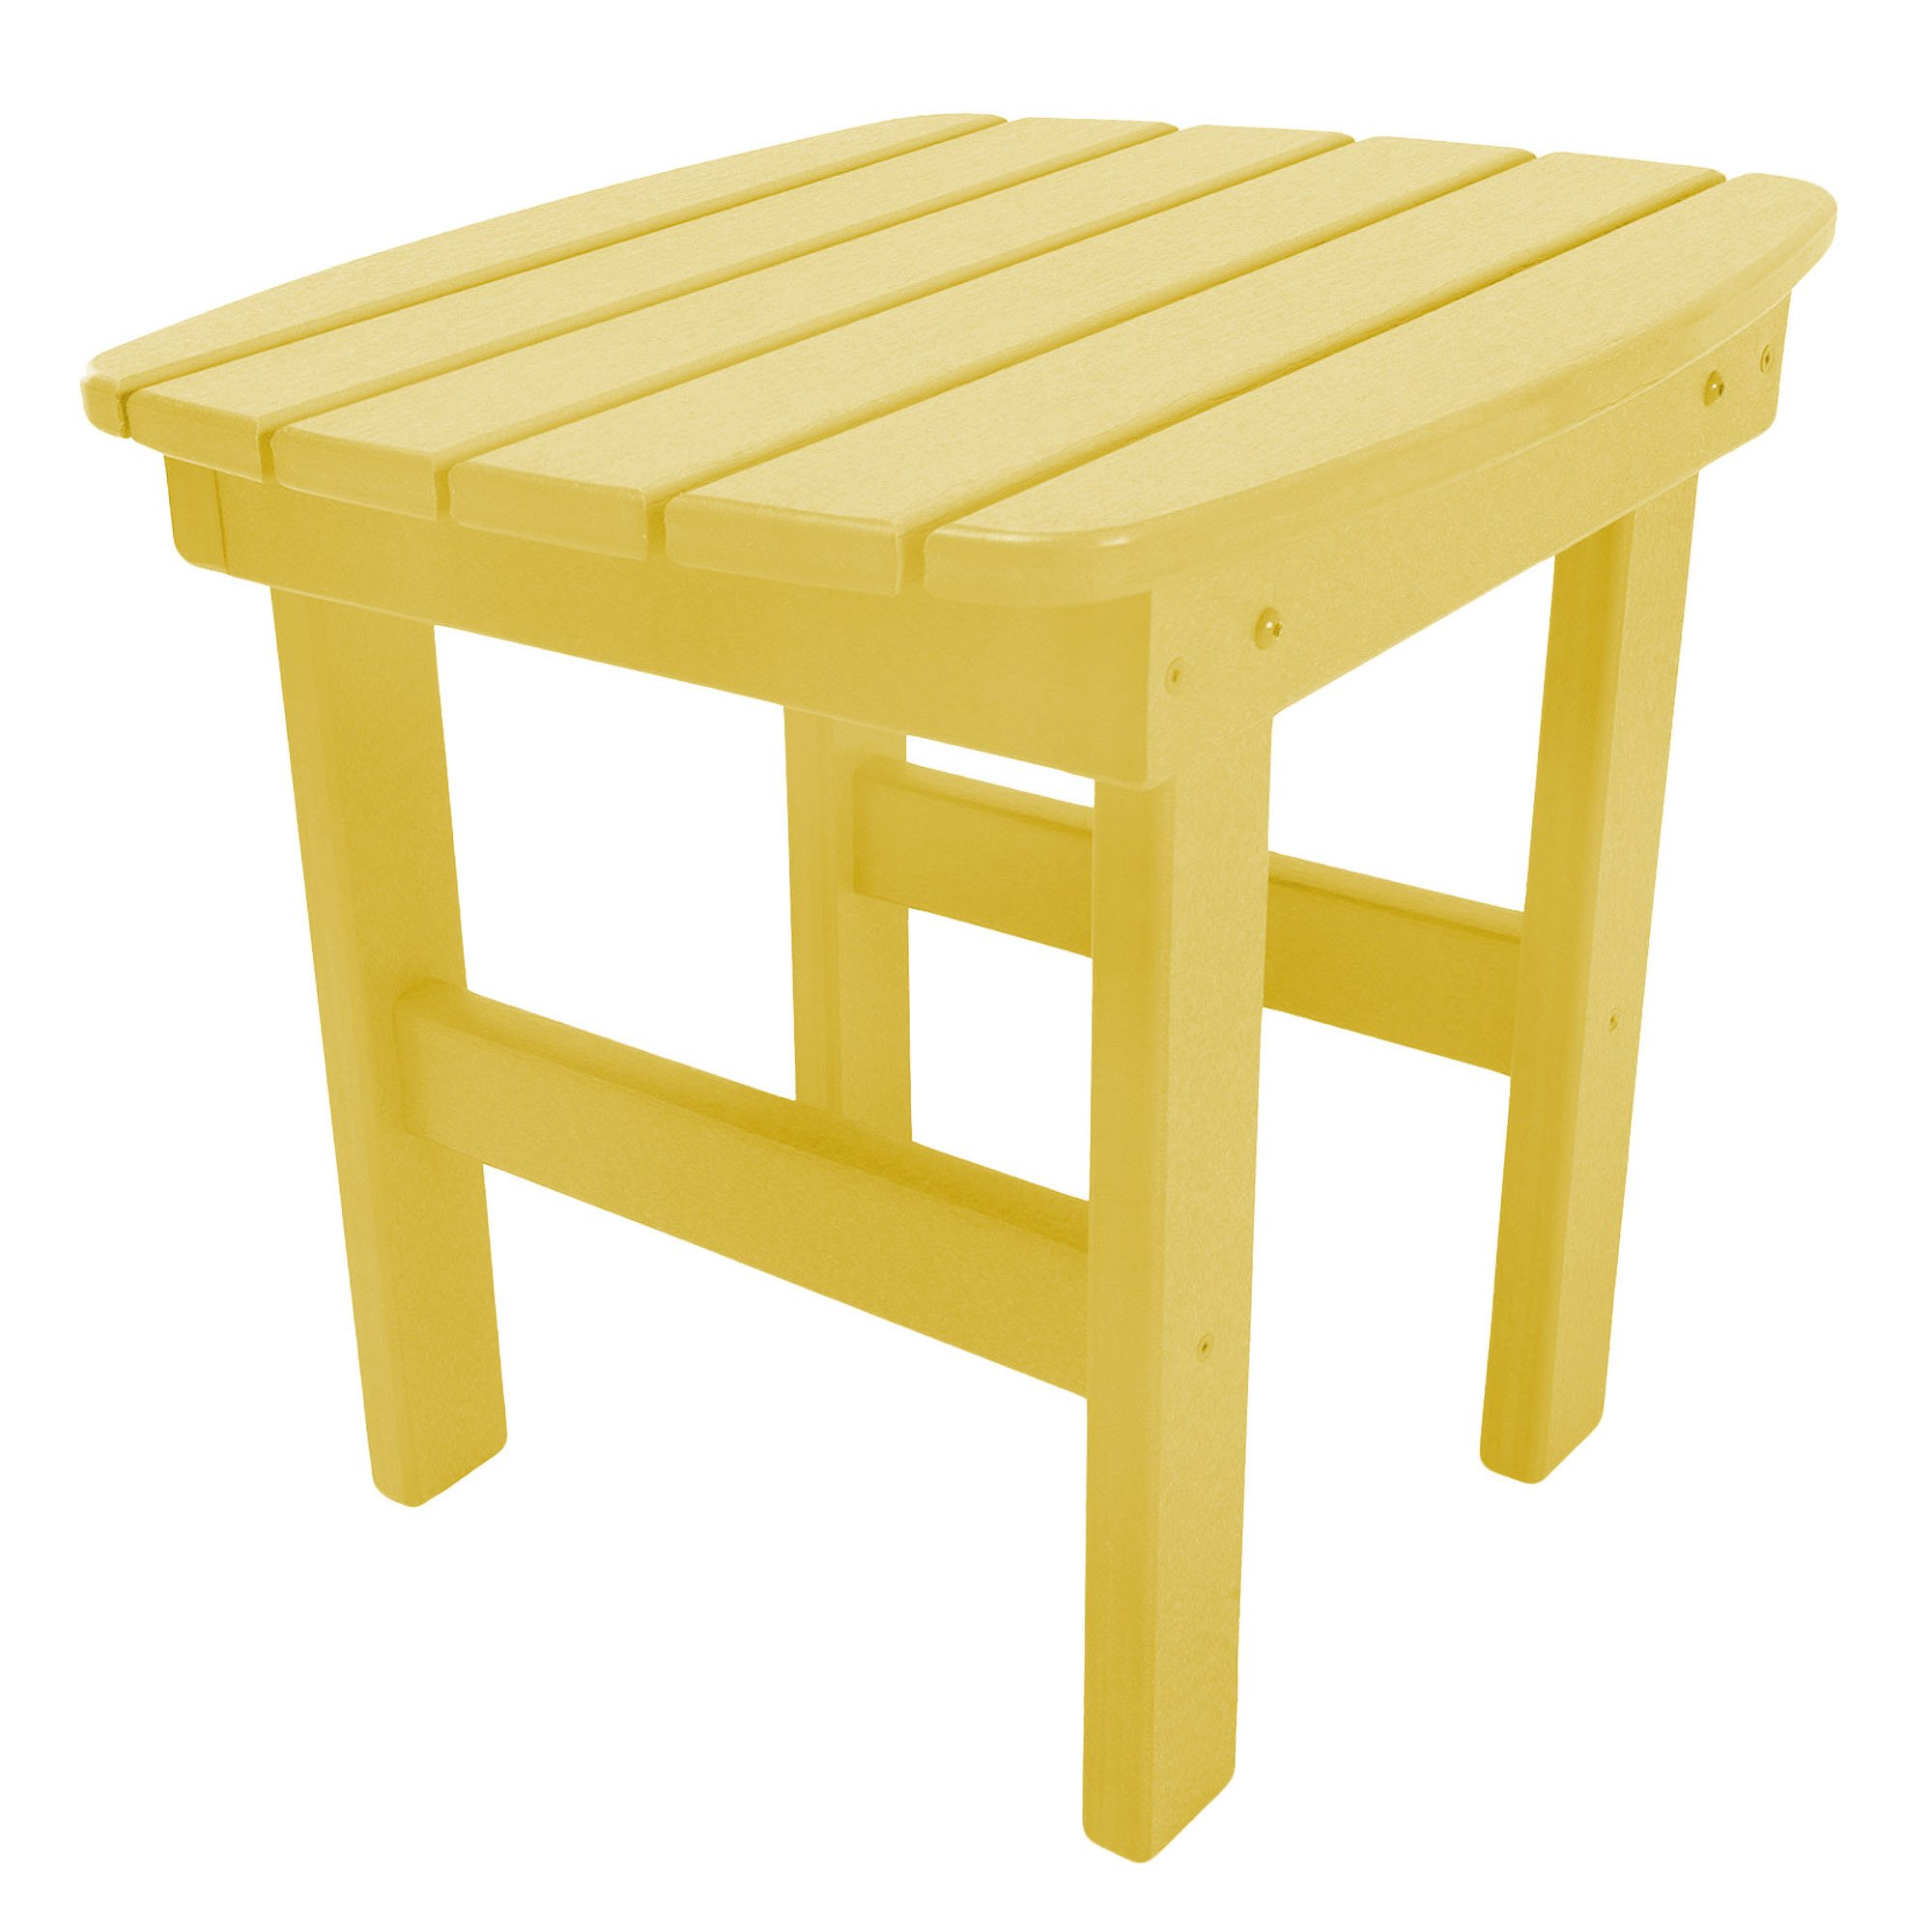 adirondack side table yellow finish free outdoor accent shipping today industrial look bedside tables wood one drawer threshold battery desk light lucite and gold coffee leather